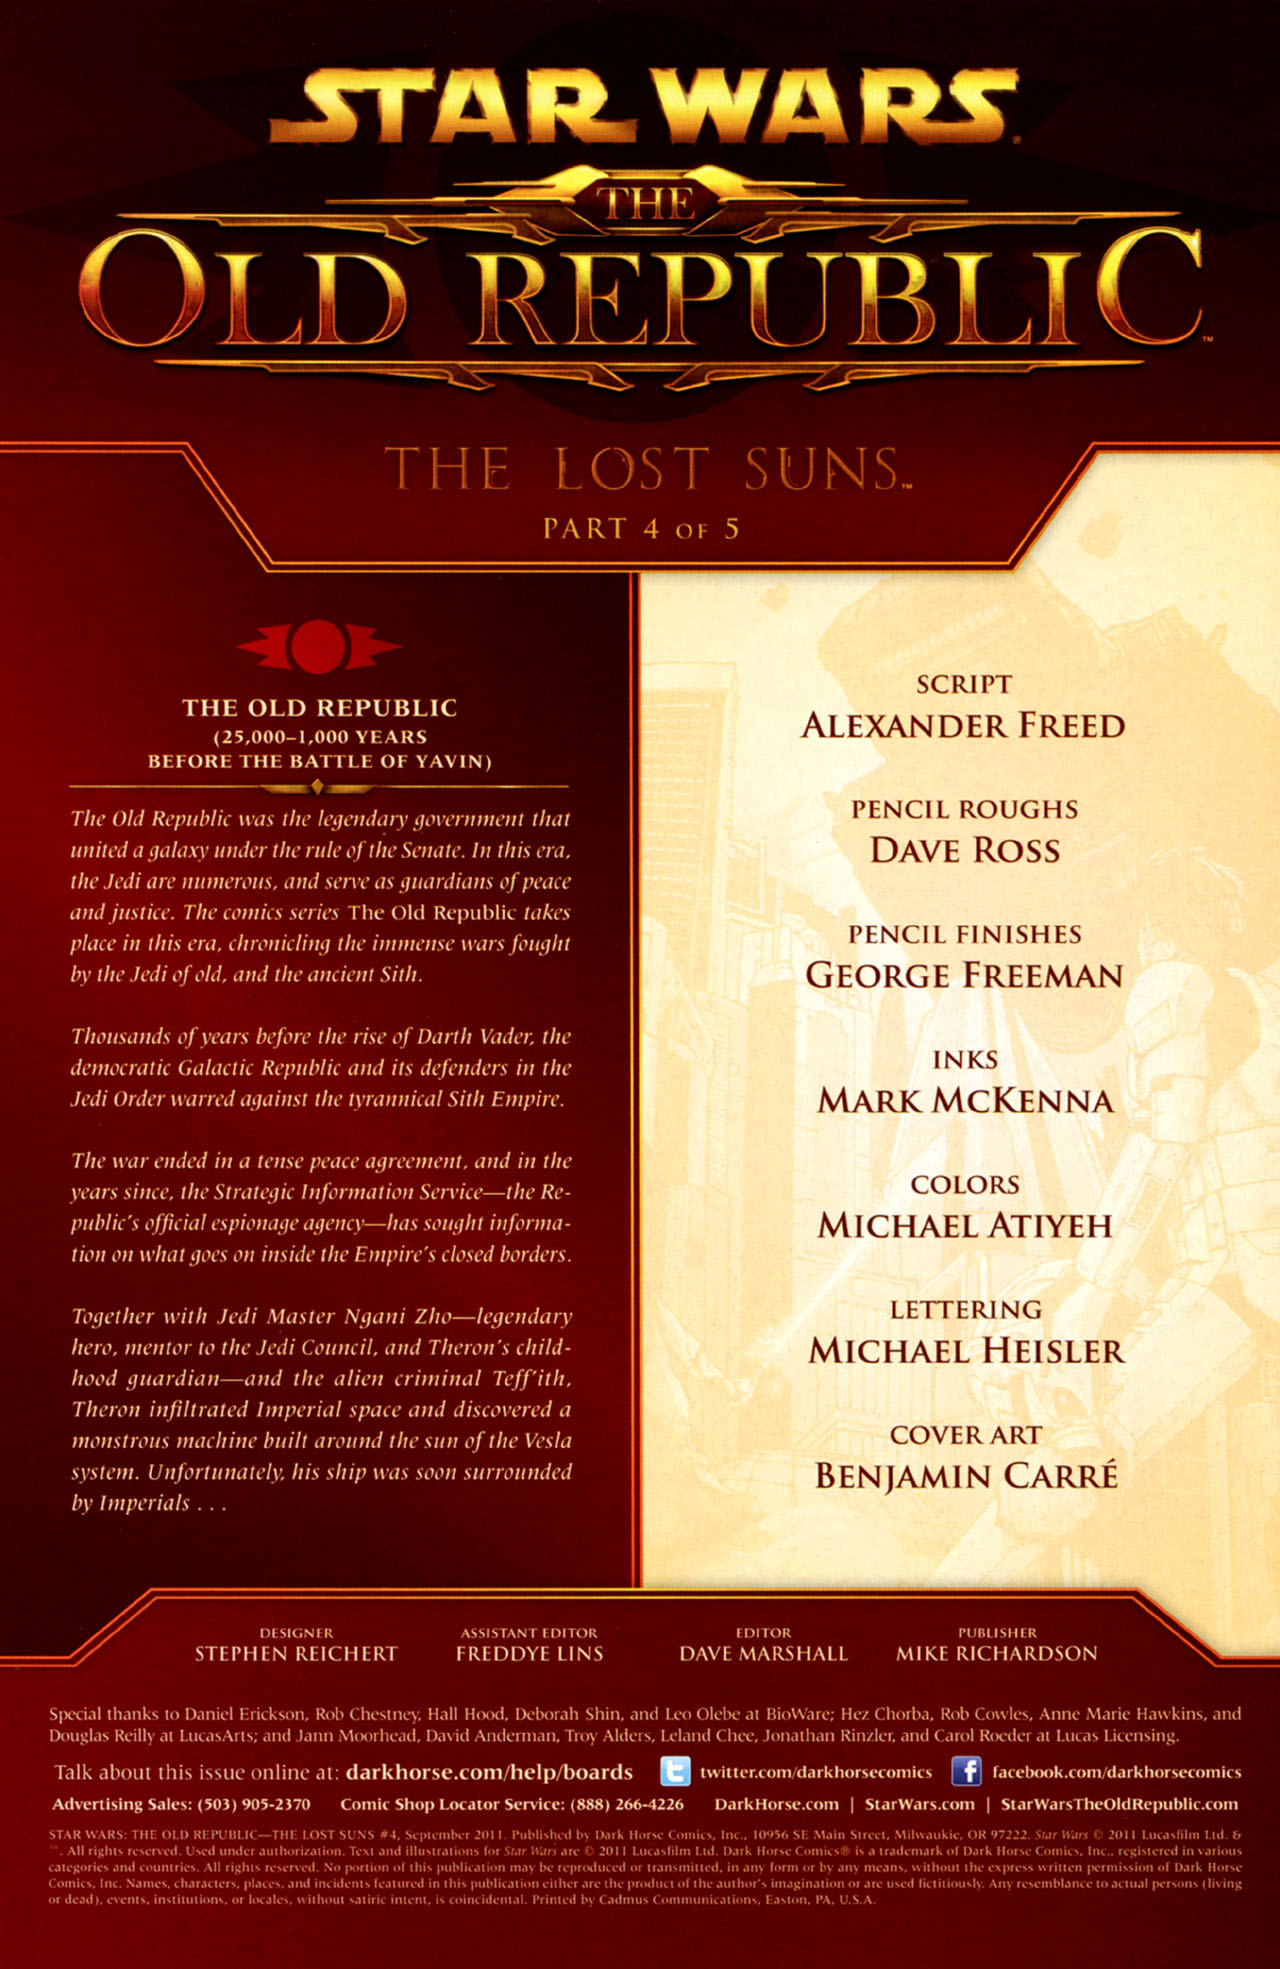 Read online Star Wars: The Old Republic - The Lost Suns comic -  Issue #4 - 2